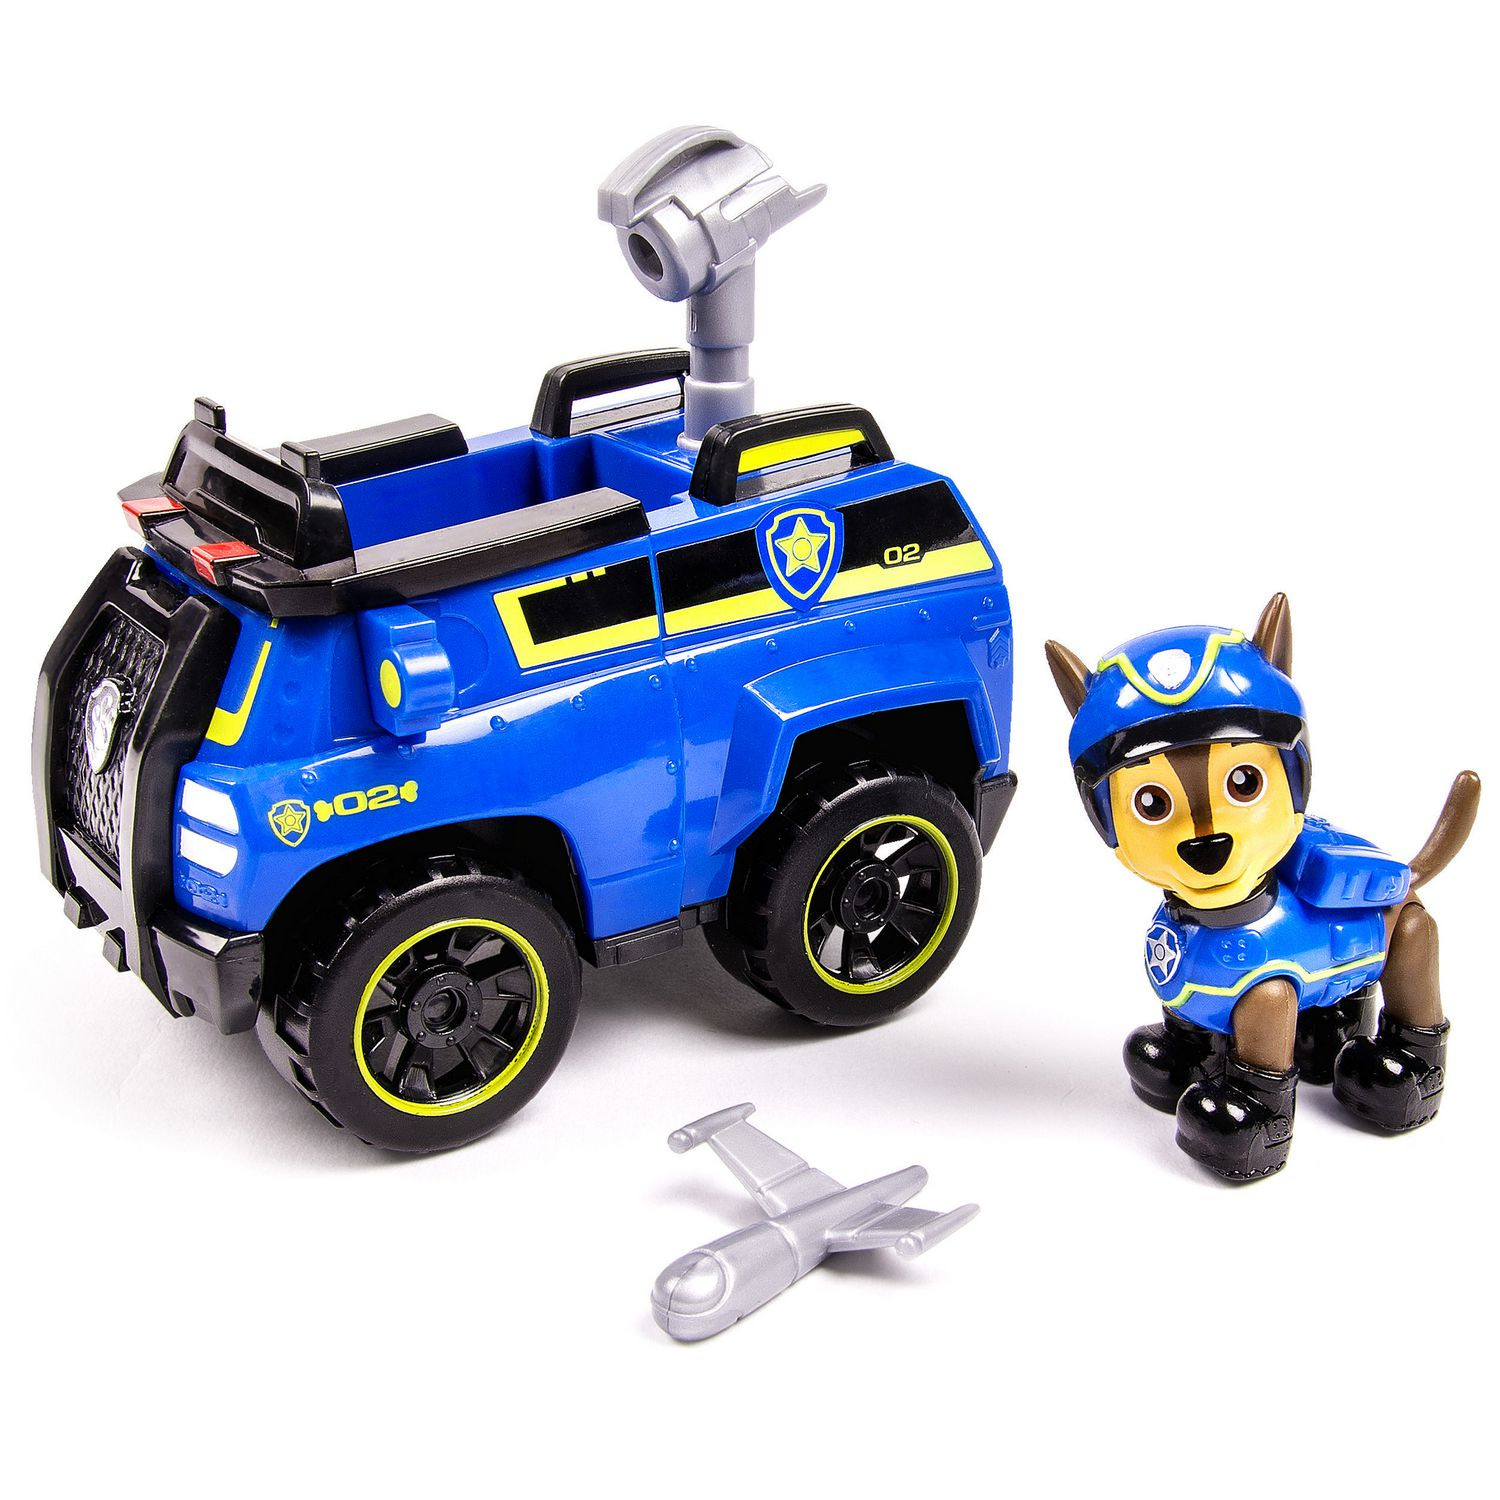 Charming PAW Patrol Chaseu0027s Spy Cruiser Toy Vehicle And Action Figure | Walmart  Canada